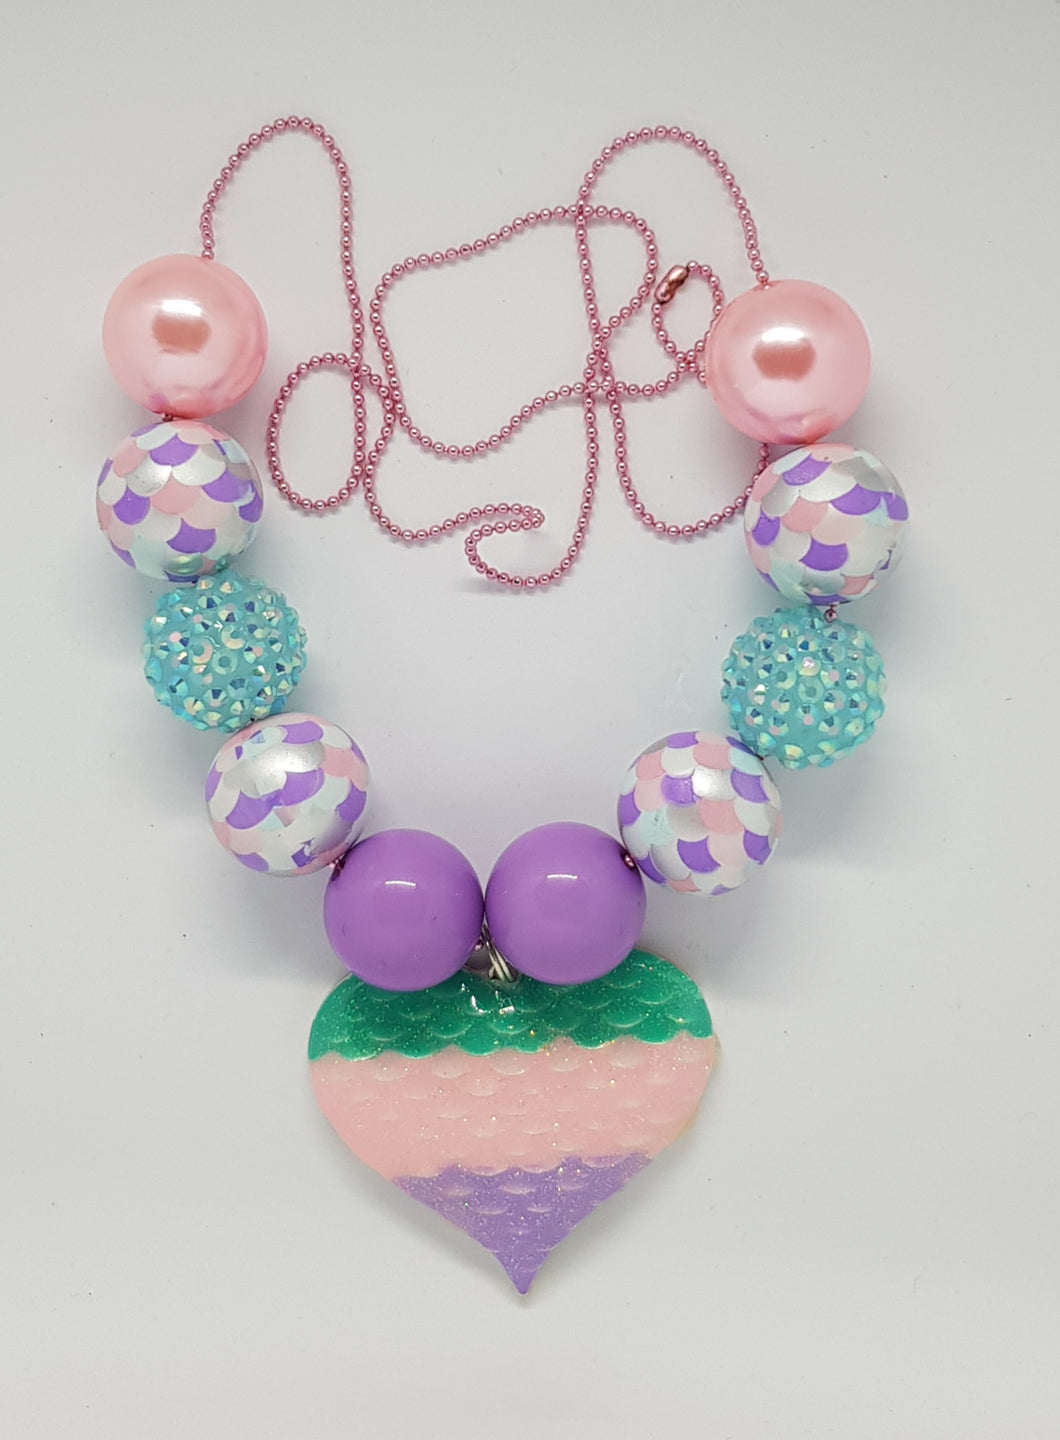 Bubblegum Bling Necklace - Mermaid Scale Heart